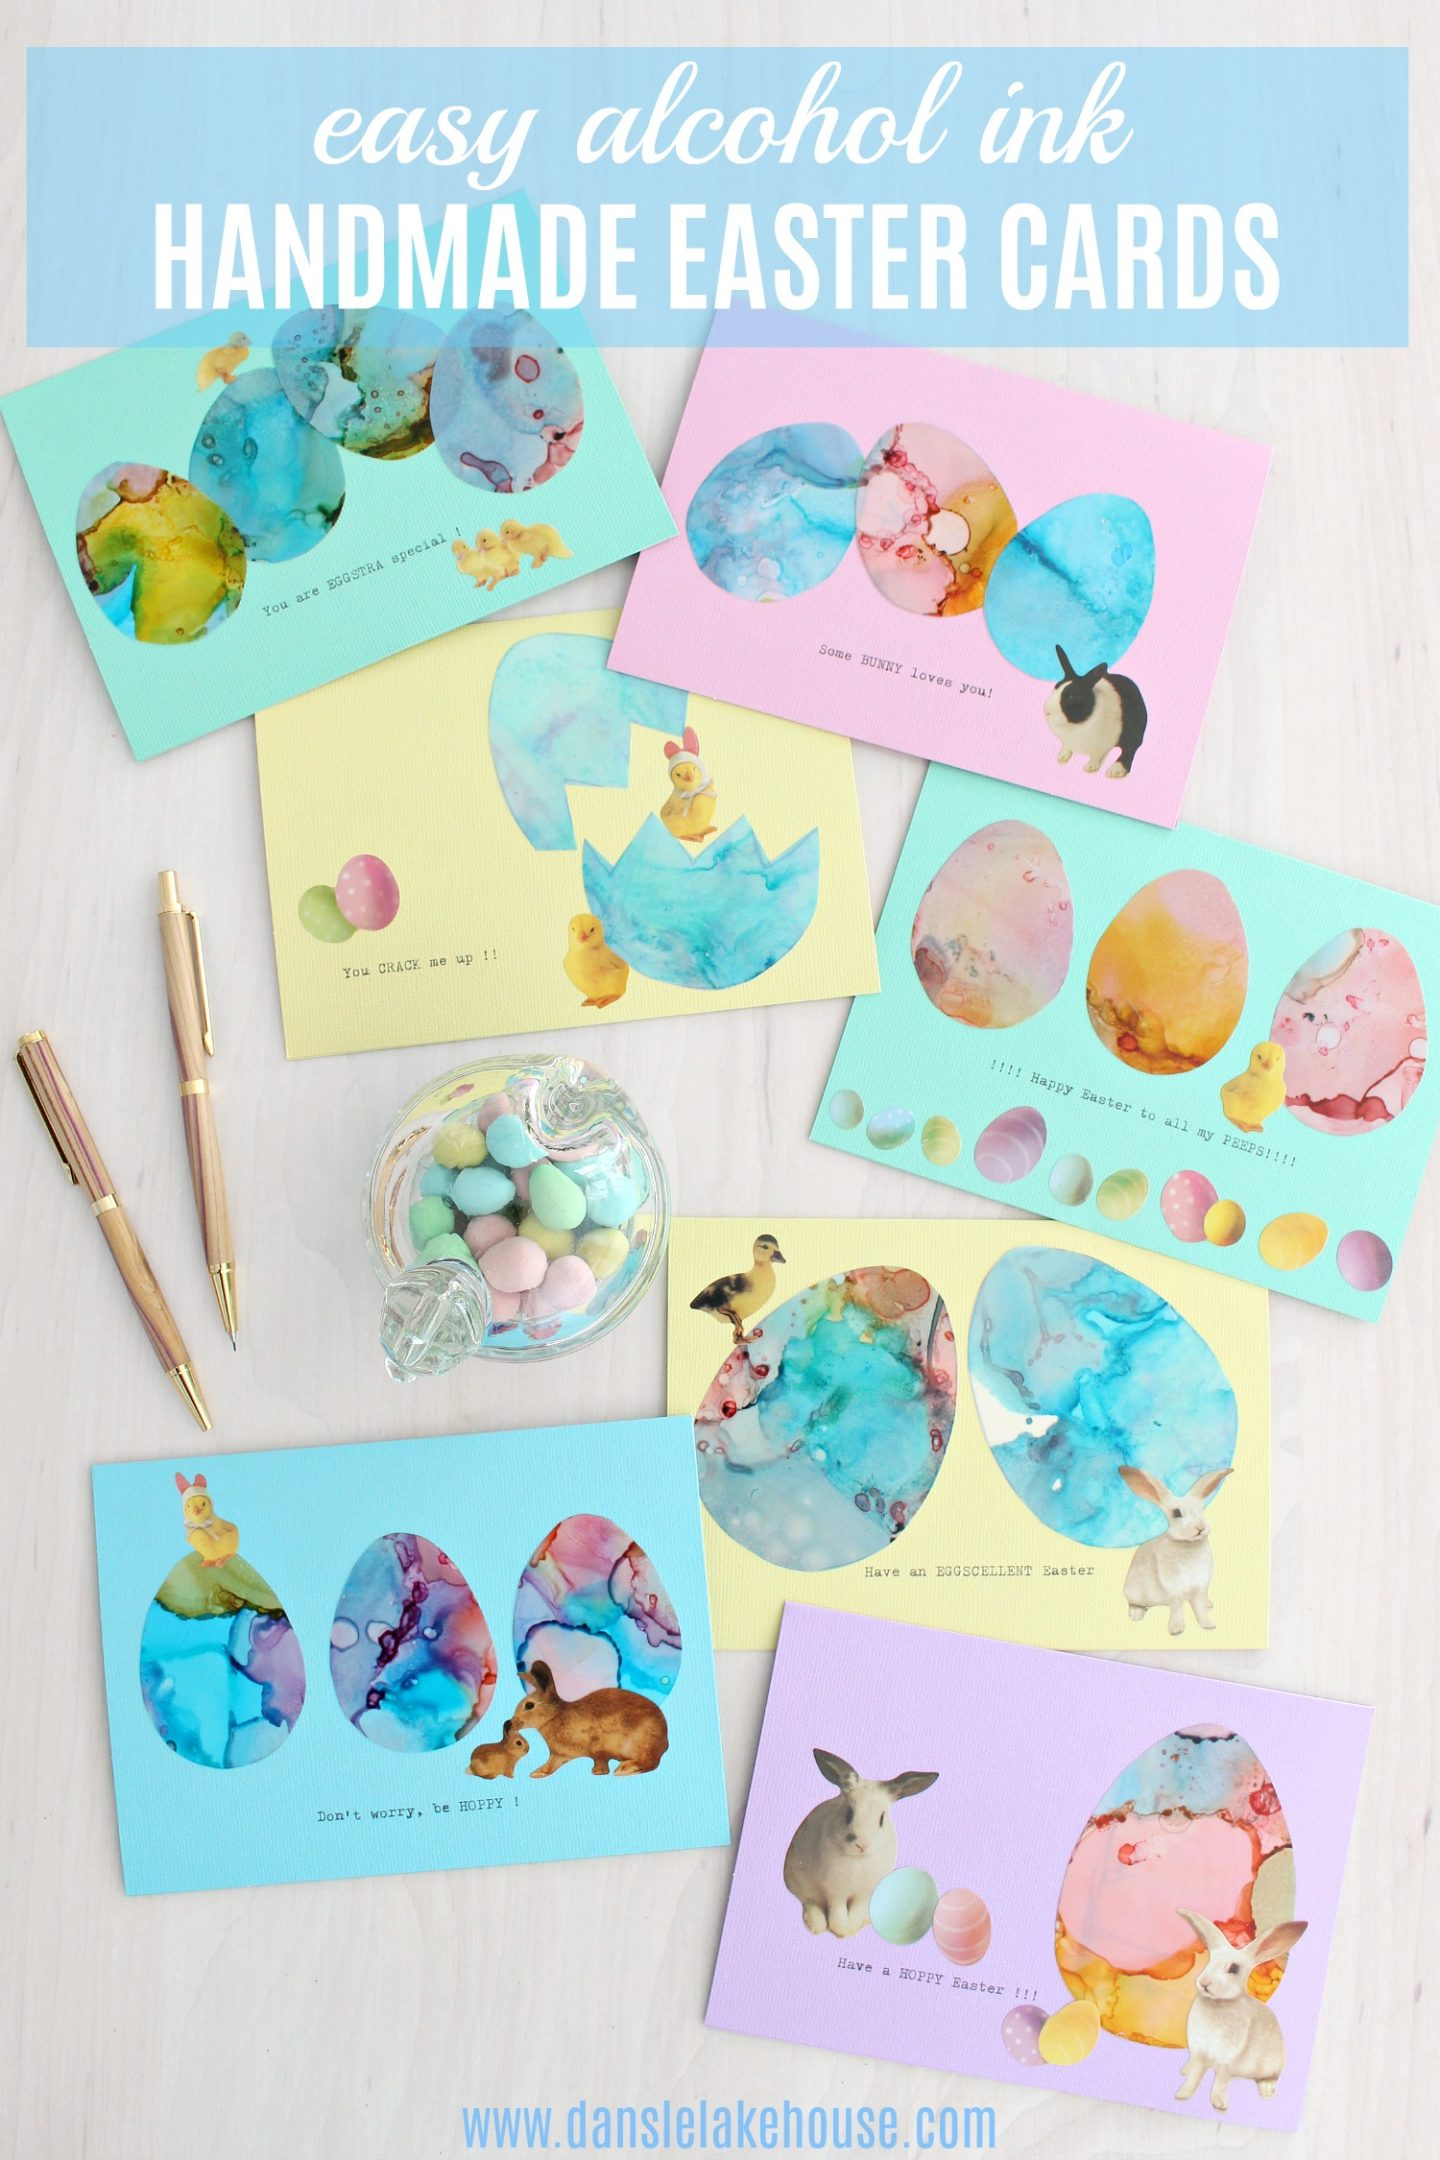 easy handmade easter cards using alcohol inks